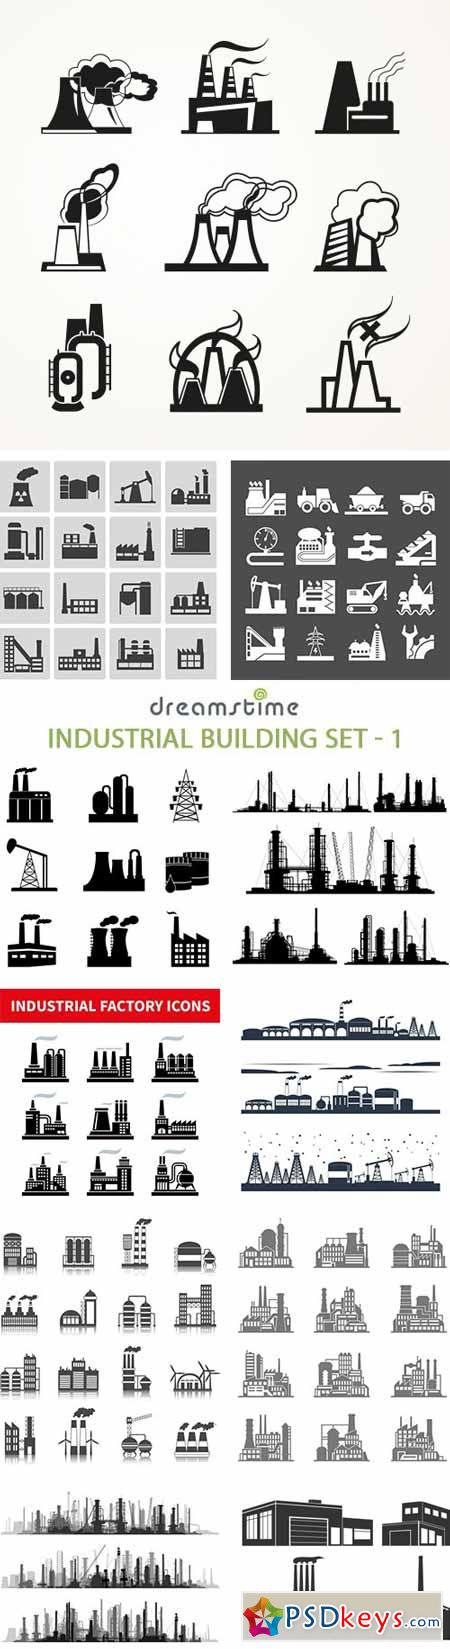 Industrial building set 1 25xeps brushes vectors pinterest industrial building set 1 25xeps gumiabroncs Choice Image